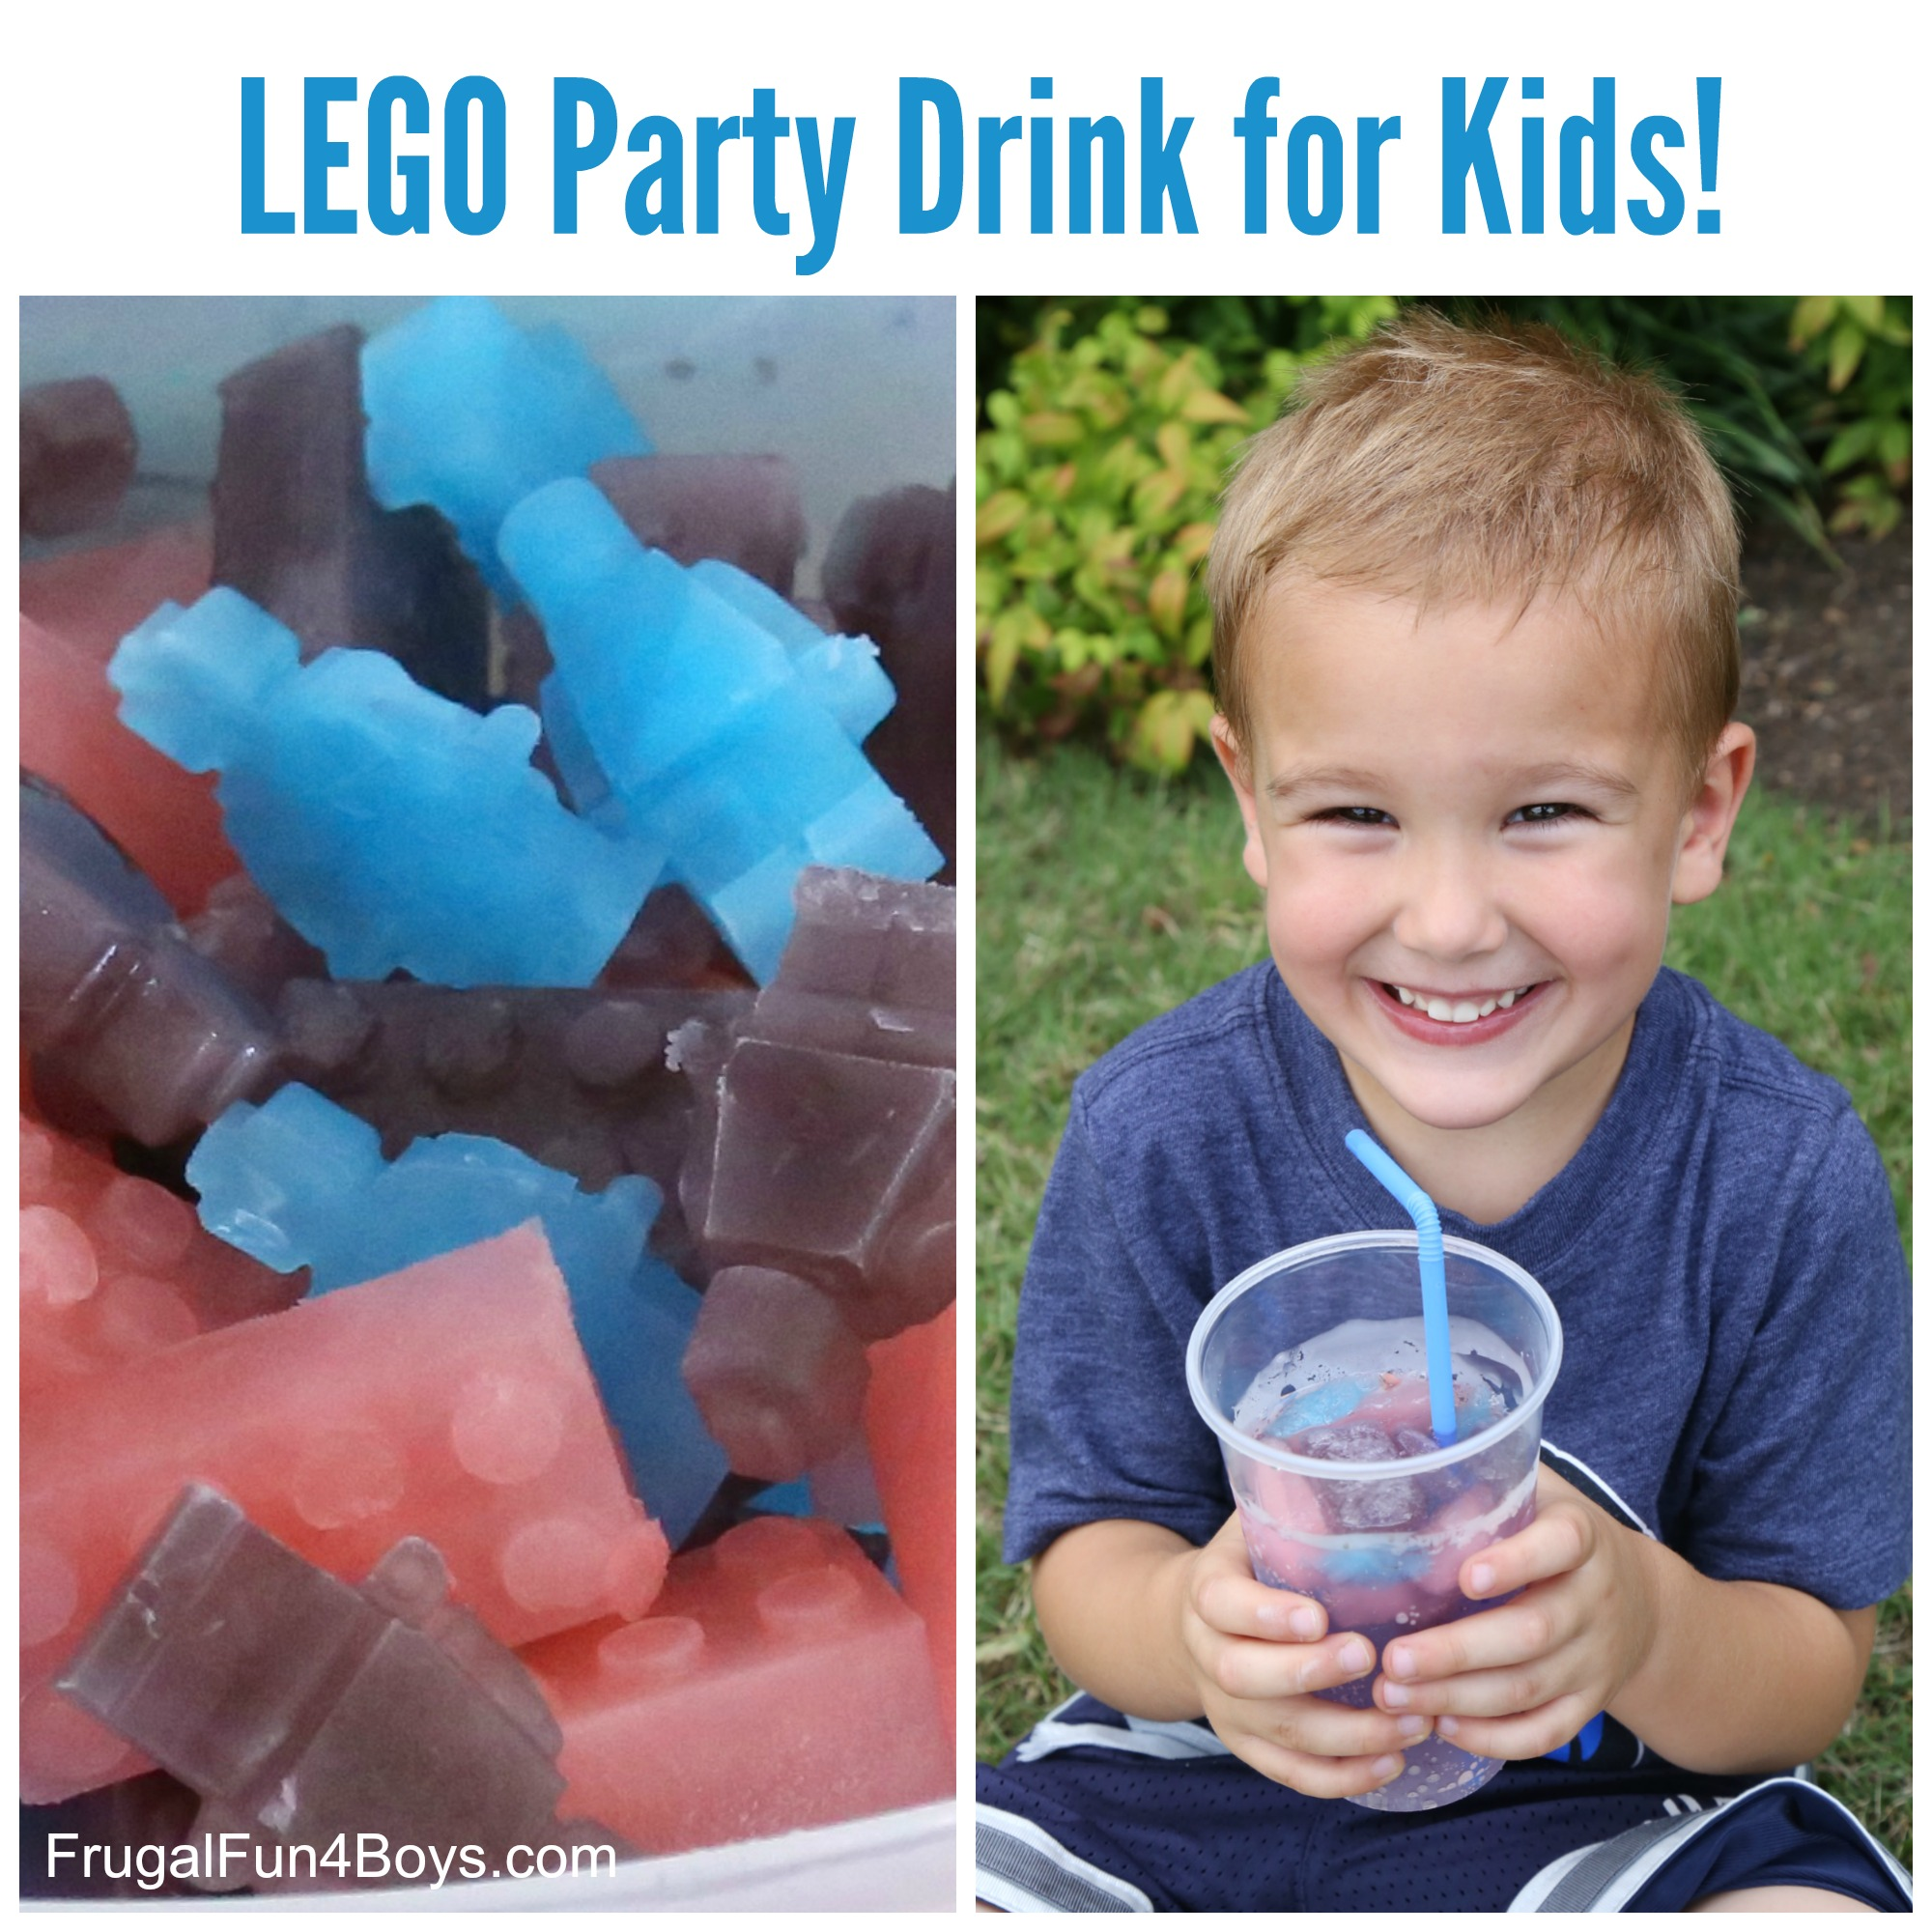 LEGO Party Drink for Kids